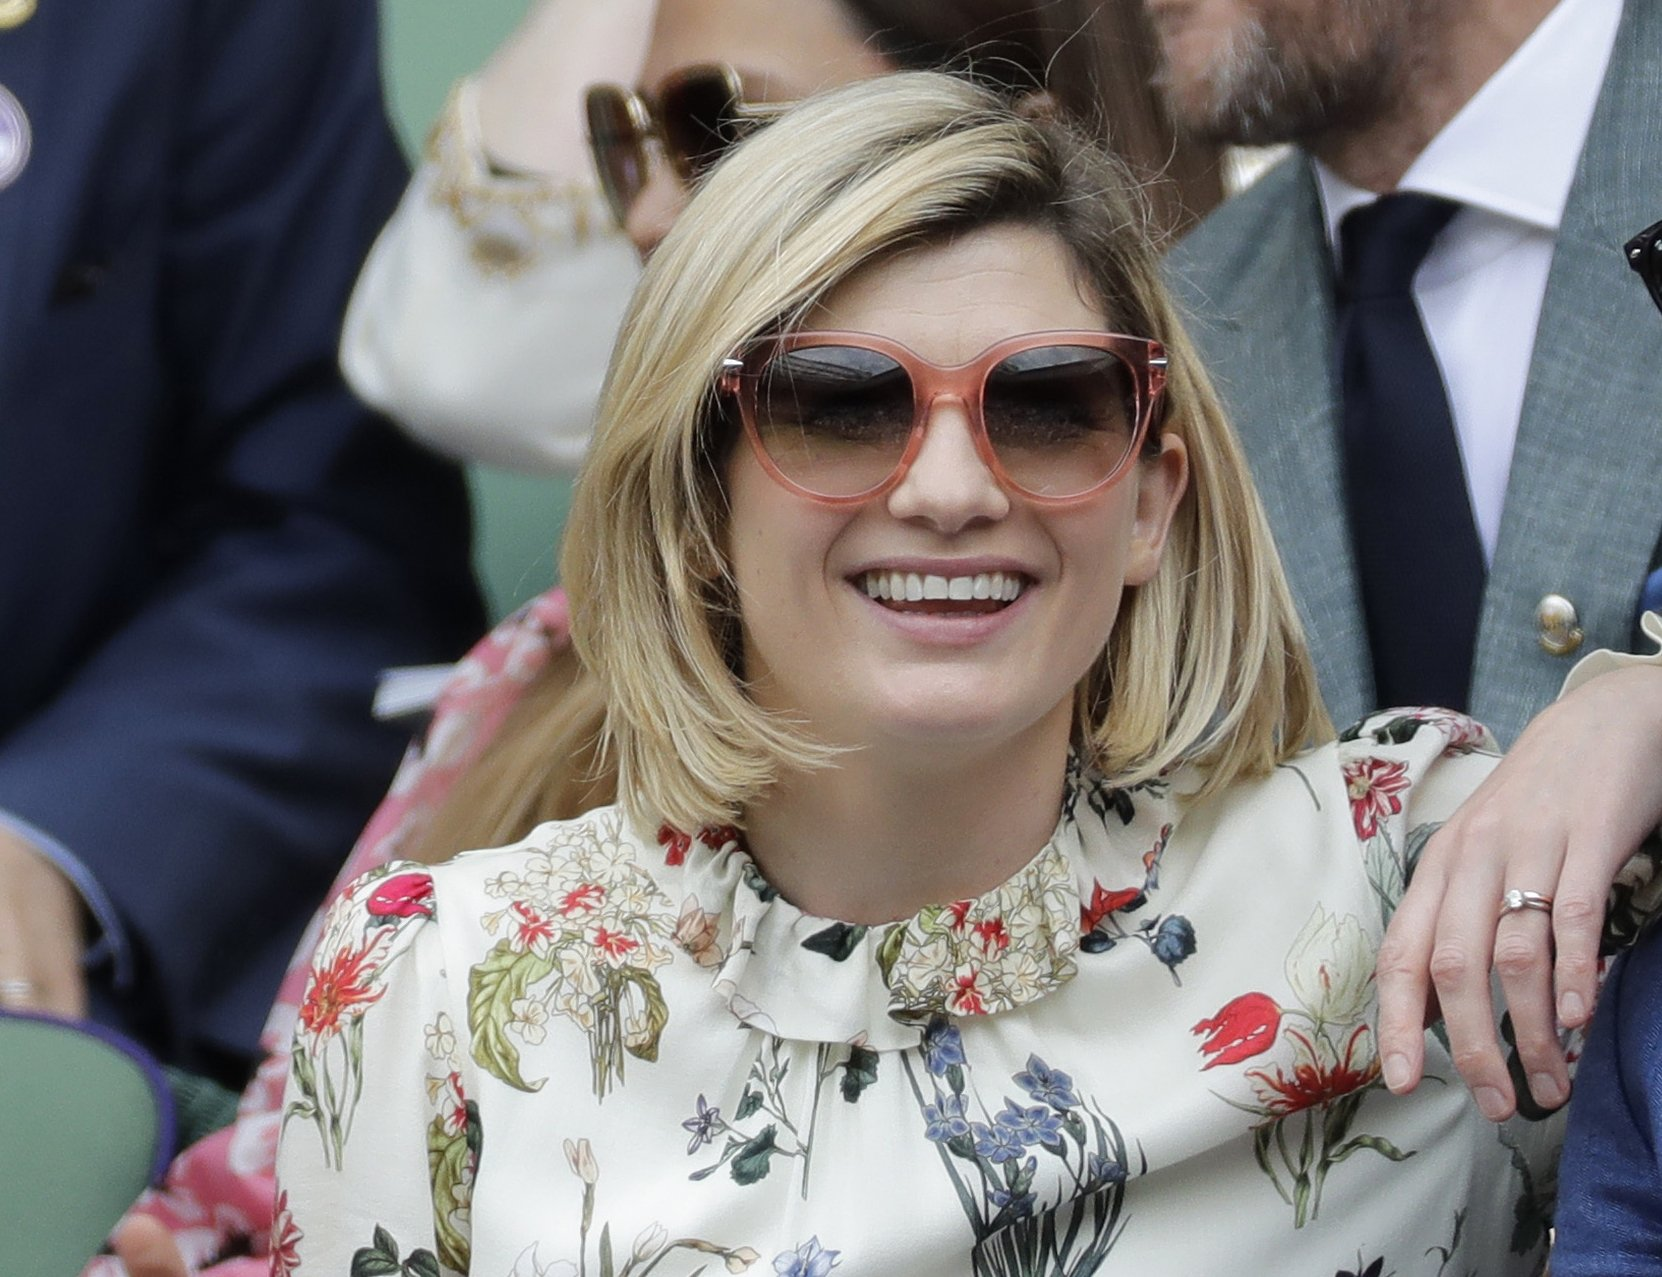 Actress Jodie Whittaker sits in the Royal Box on Centre Court to watch the women's singles final match on day twelve of the Wimbledon Tennis Championships in London, U.K., July 13, 2019. (AP Photo)